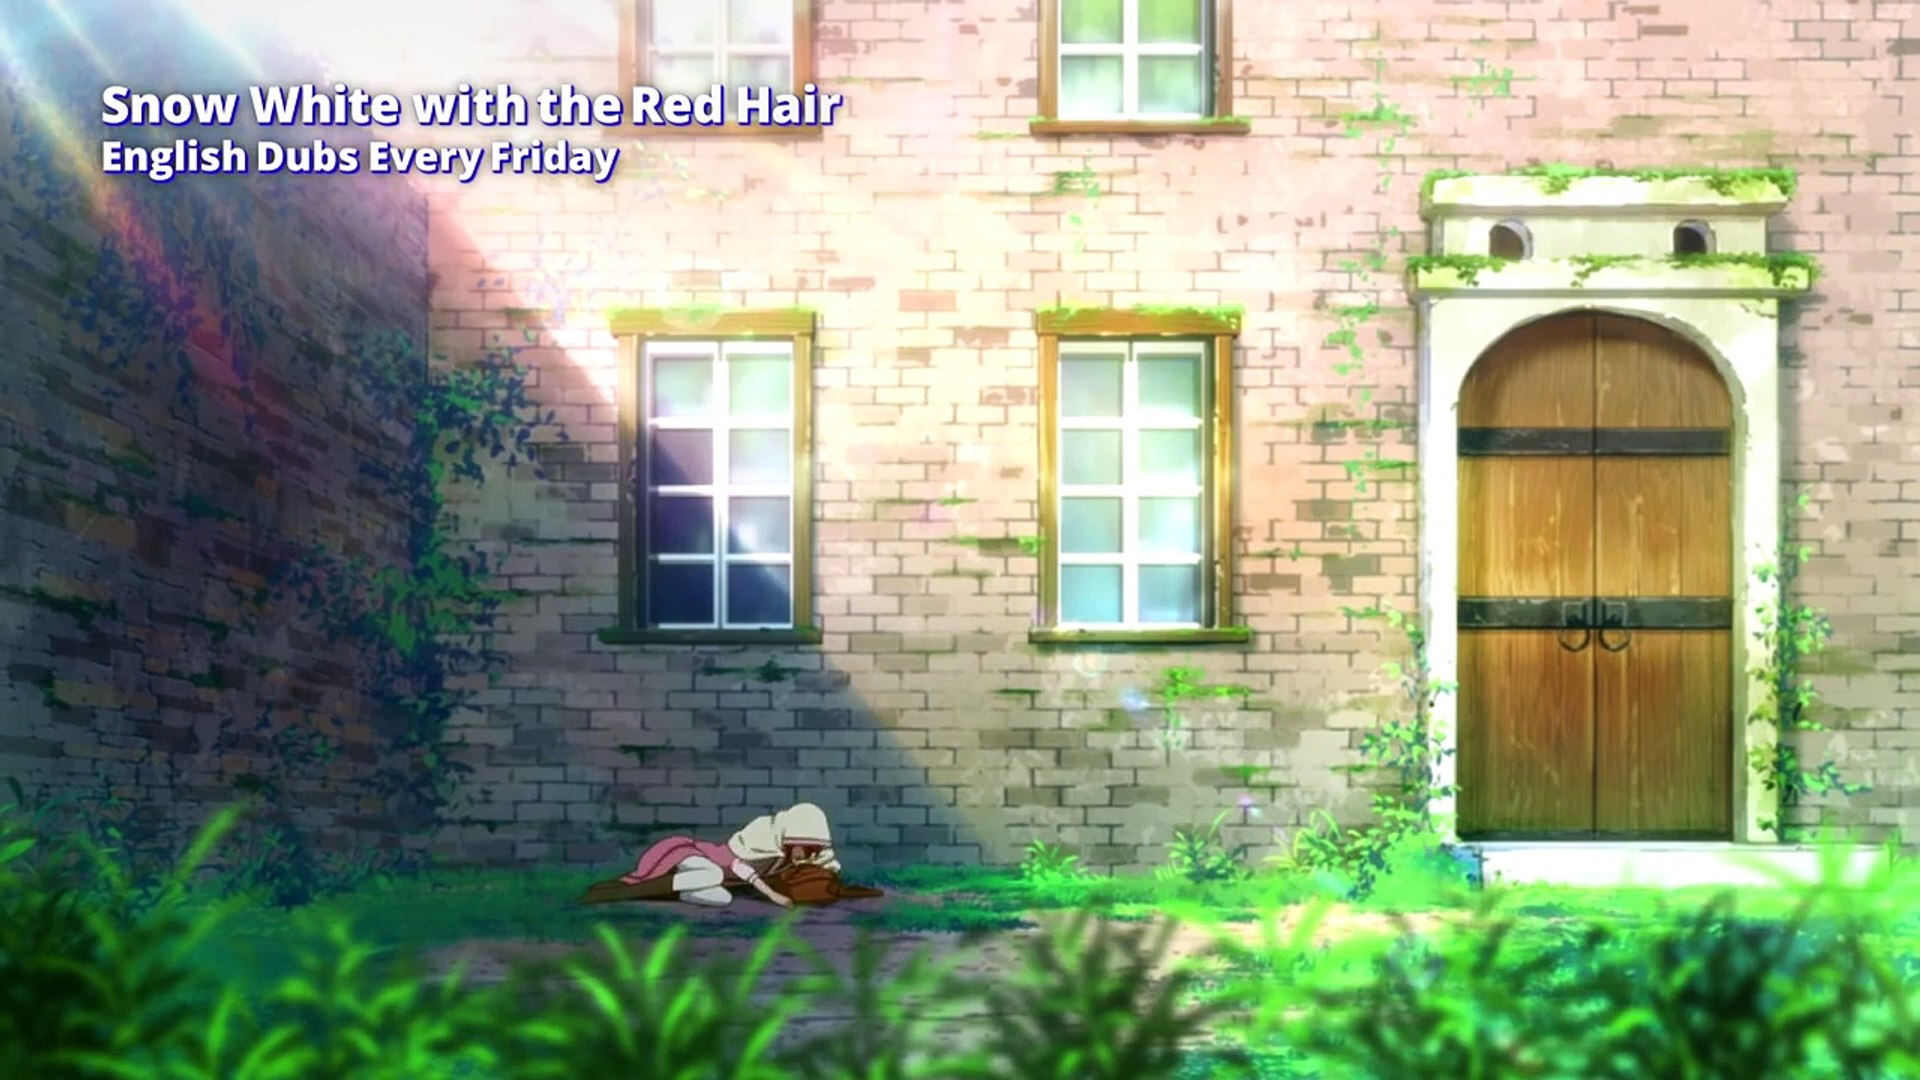 Snow White With The Red Hair English Dub Clip Meet Zen